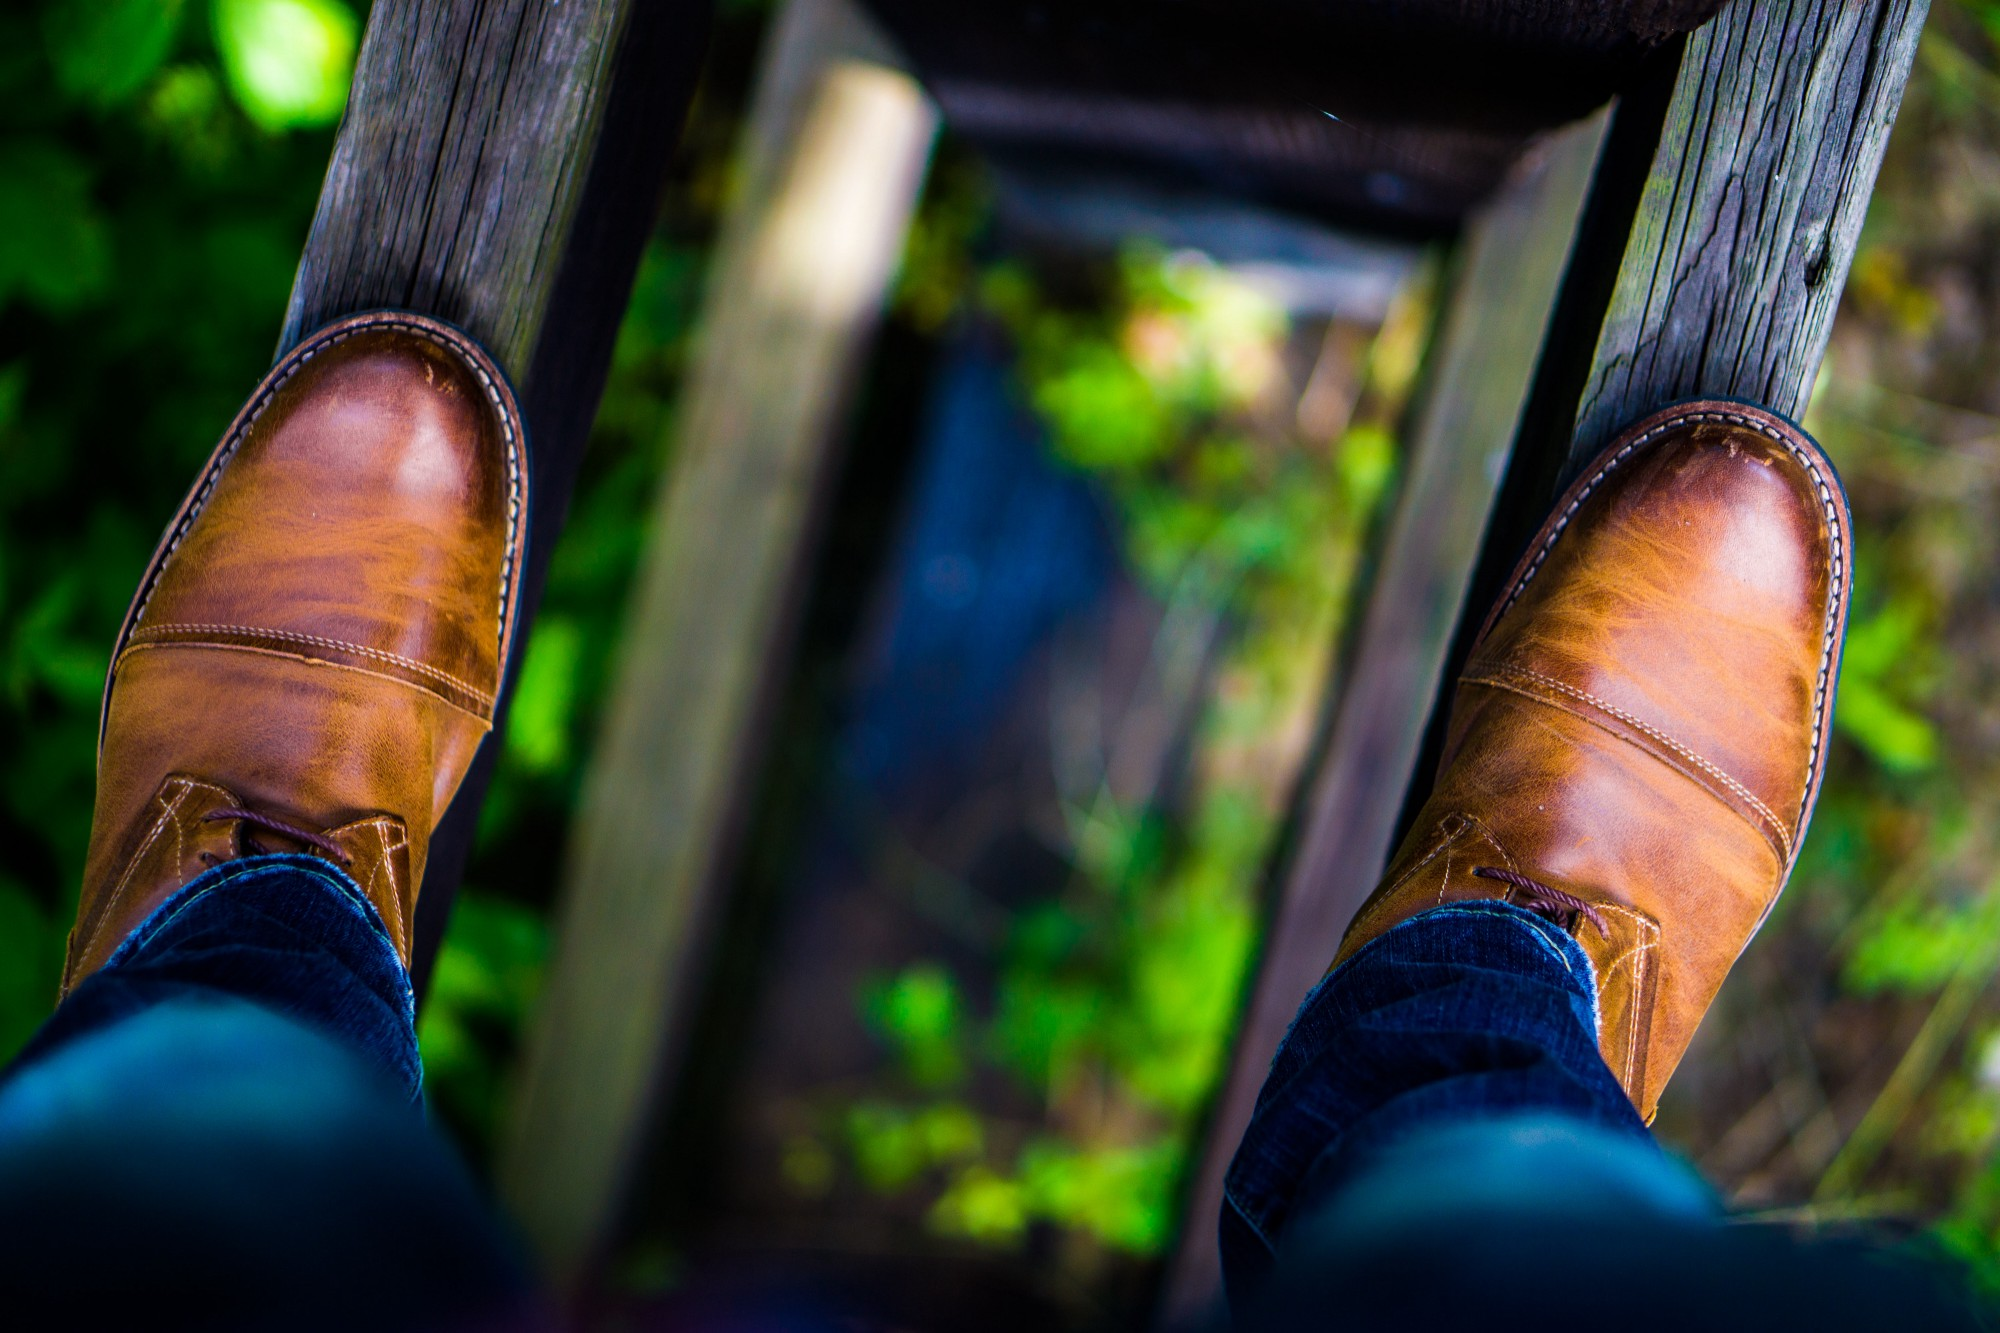 Image of a man's legs and dress shoes balanced on wood beams over a forest